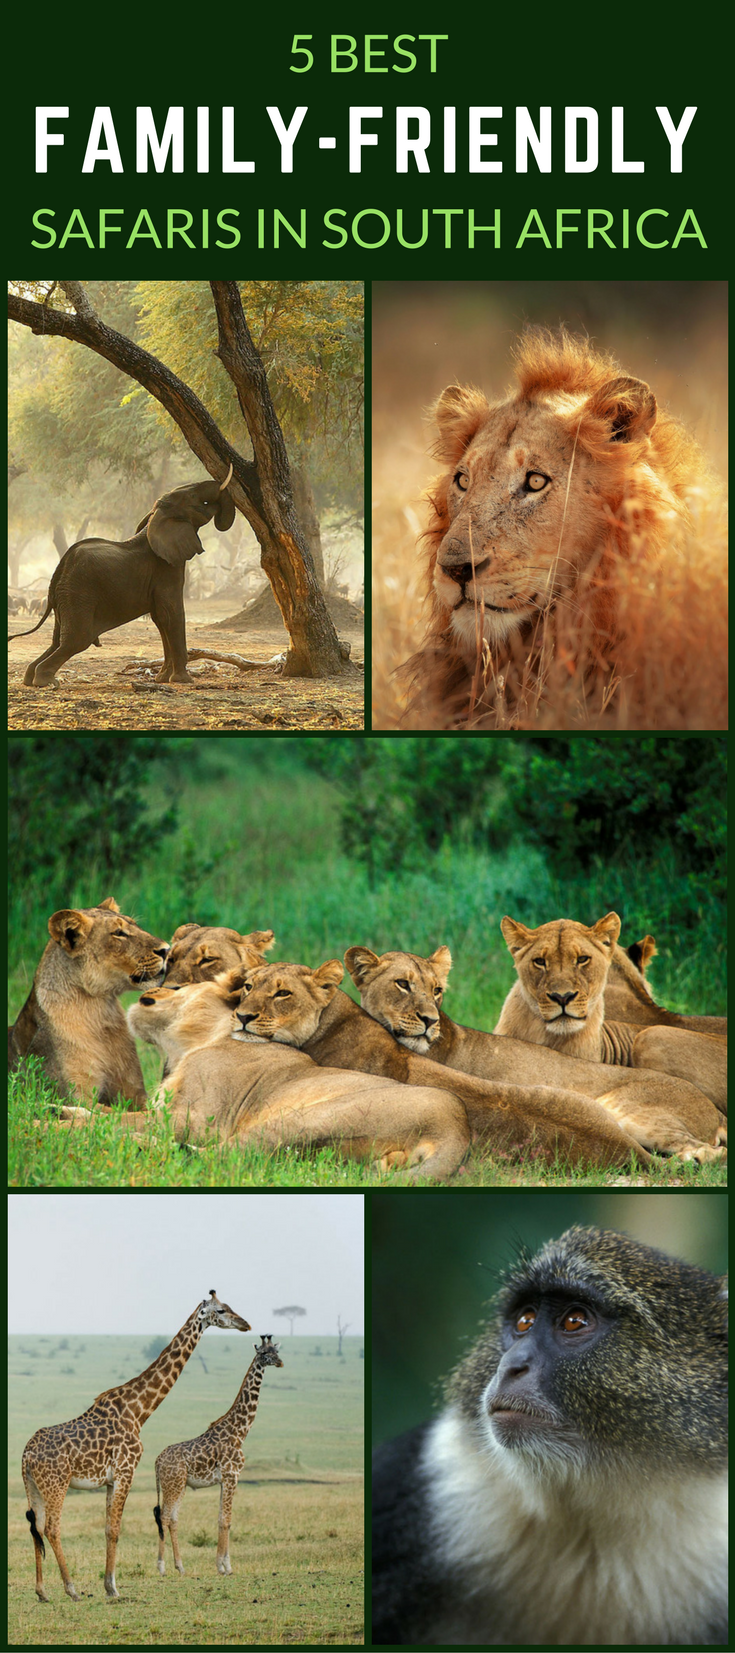 It can be difficult to find family-friendly safari destinations that are accessible and safe for the whole family. But if the kids aren't decent enough to agree to be left at home, South Africa is certainly your best bet for the whole family. Click through to find out why!